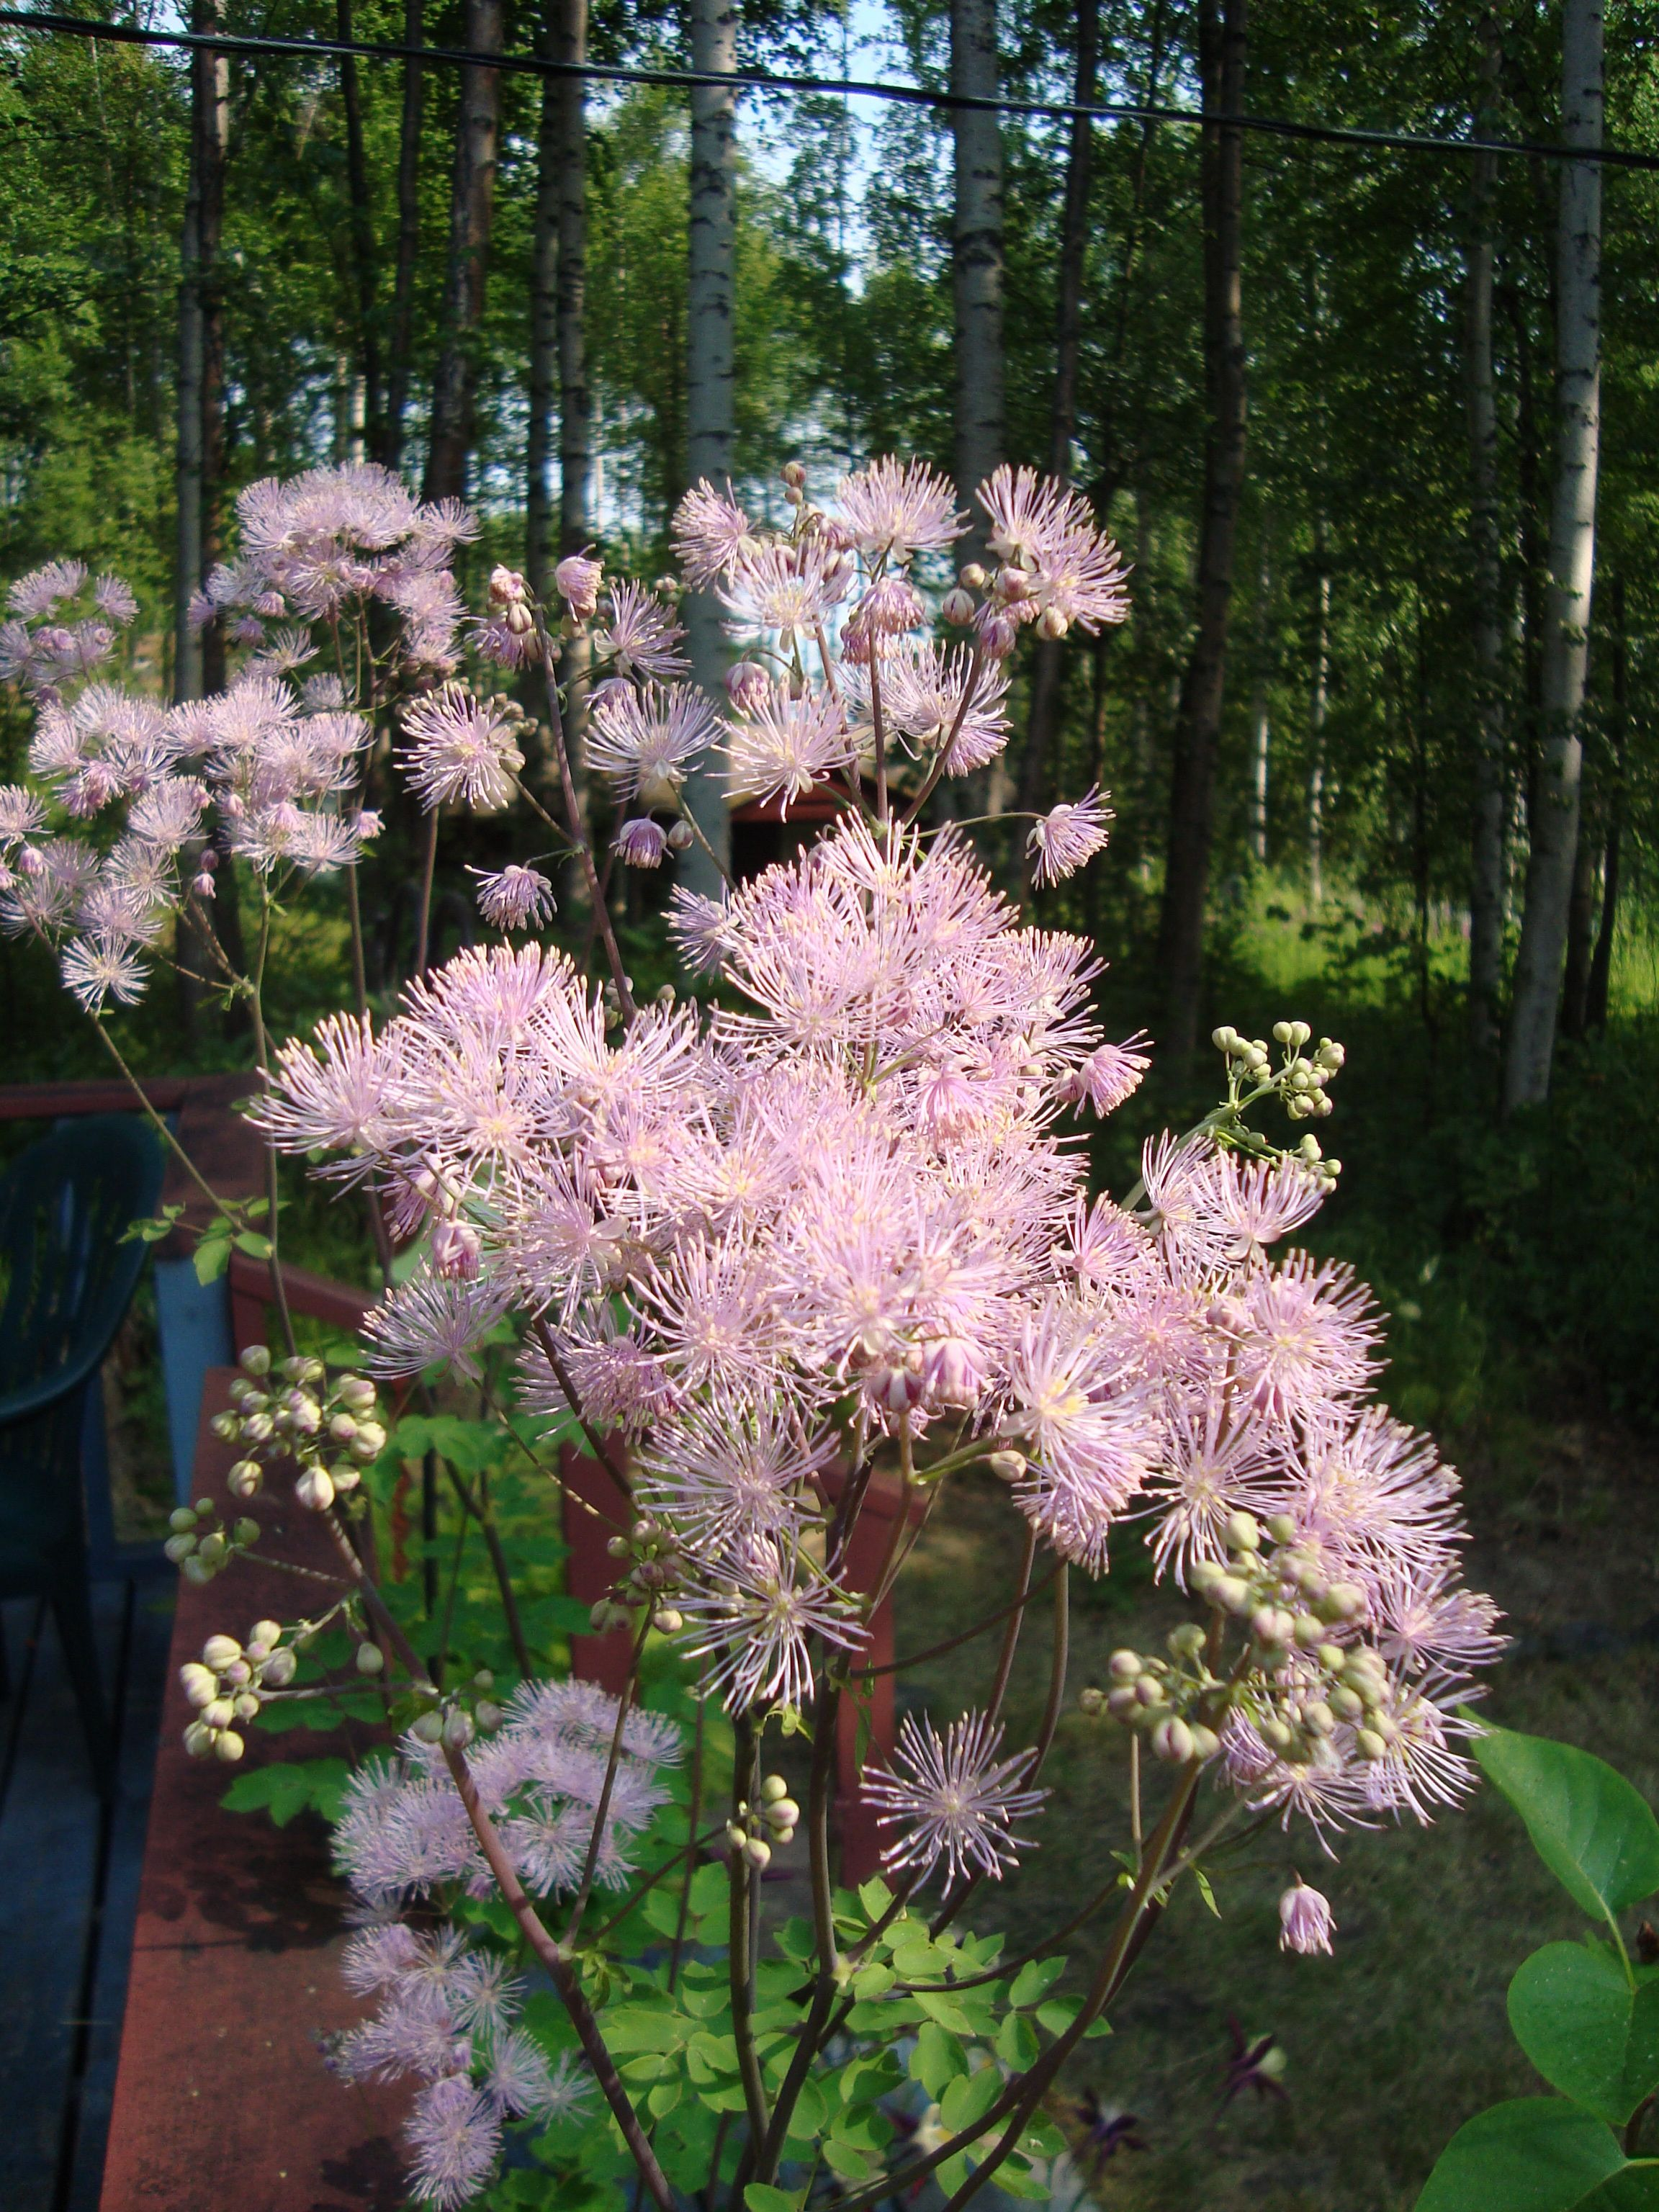 Meadow Rue This Tall Plant With Fluffy Flowers Adds Height To The